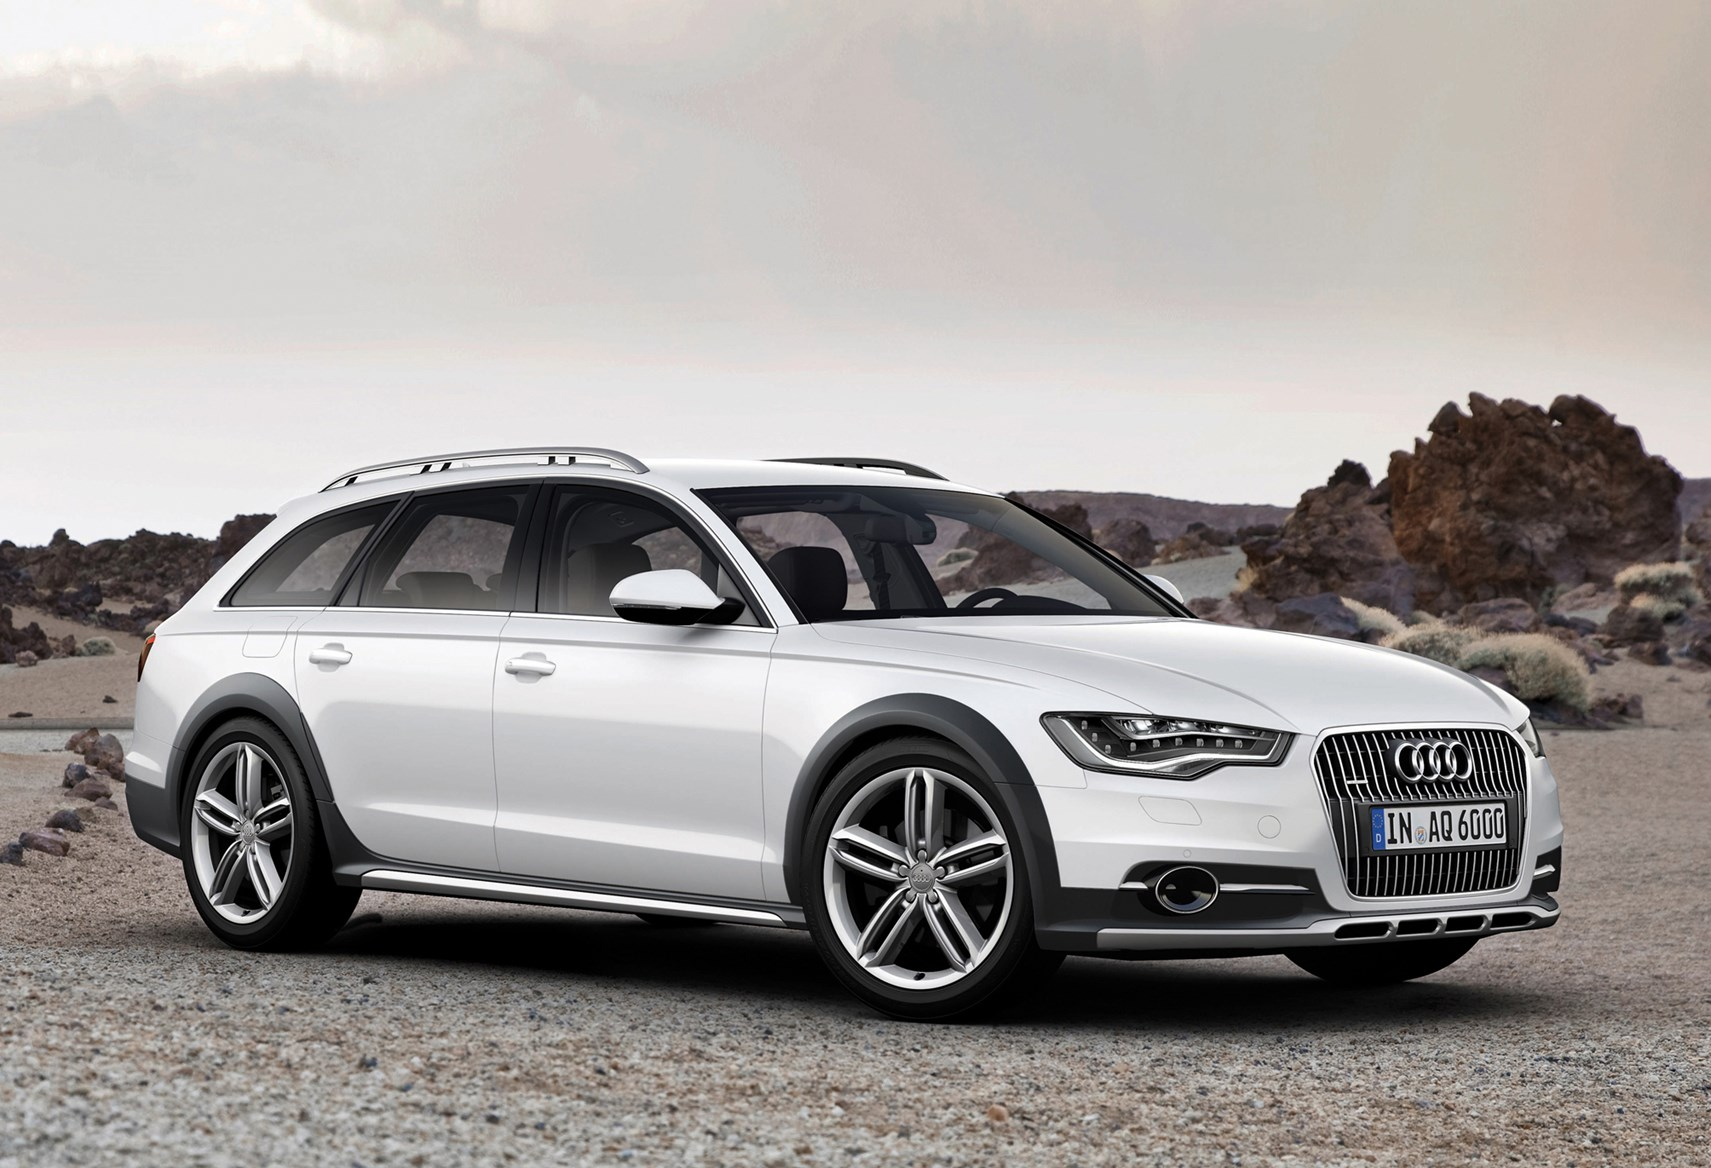 audi a6 allroad review 2012 parkers. Black Bedroom Furniture Sets. Home Design Ideas